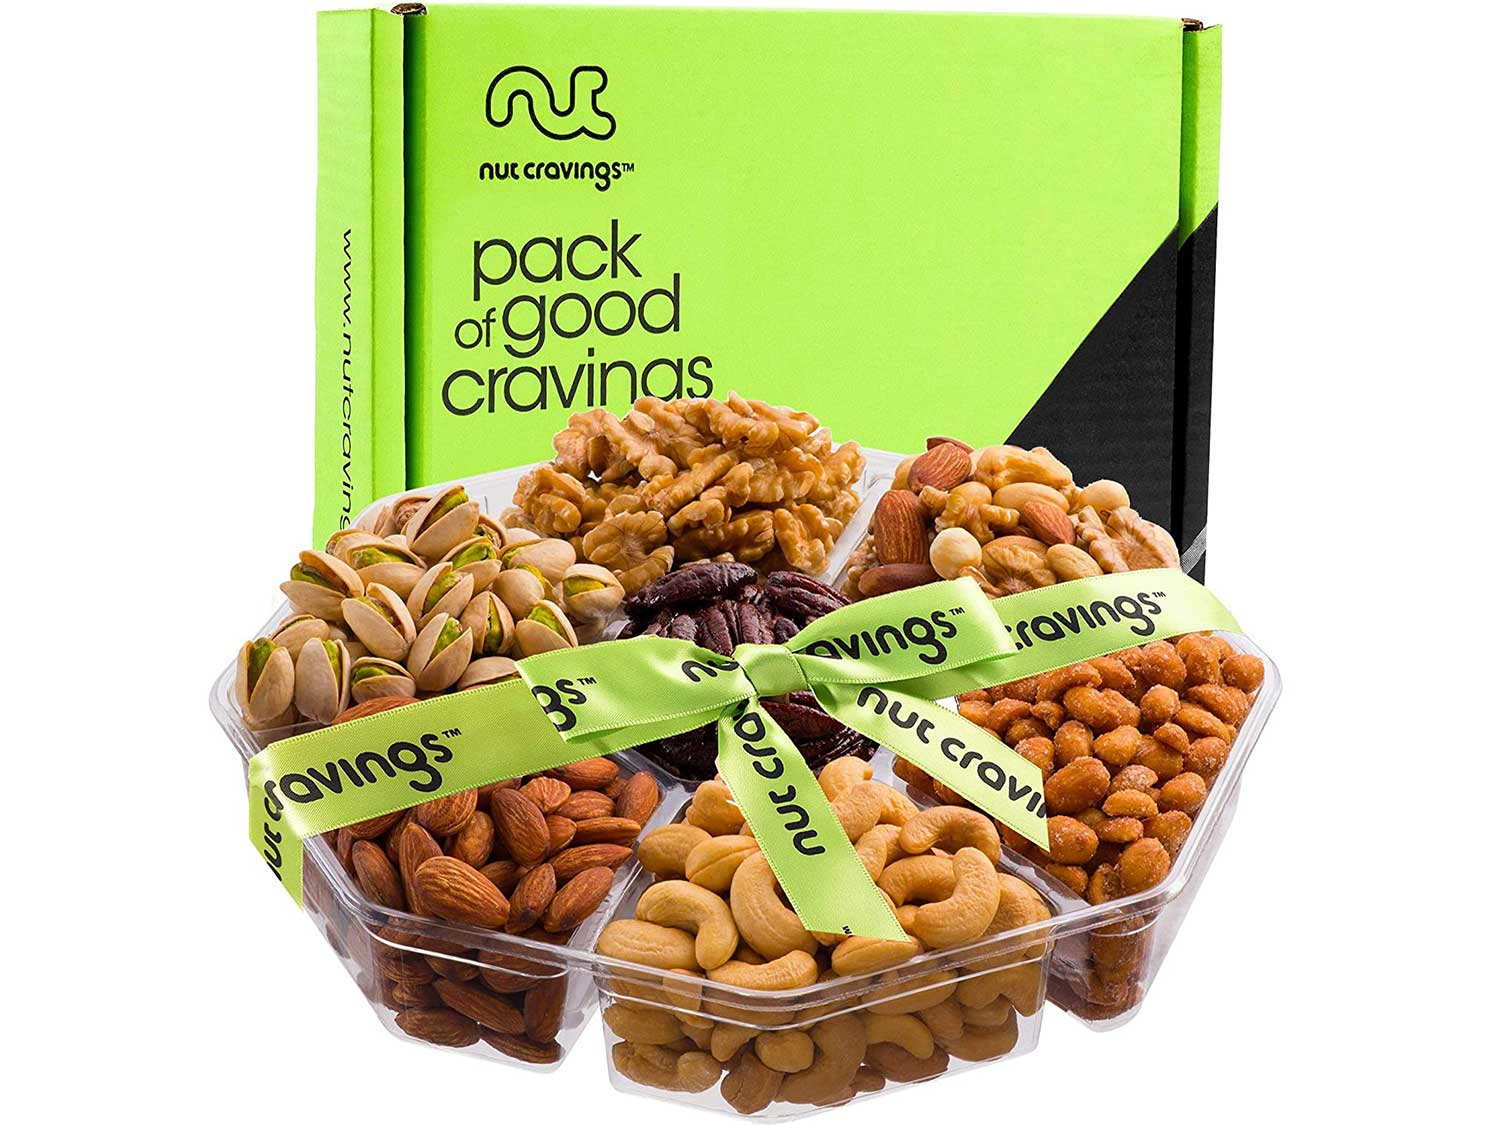 Fathers Day Gift Basket, Gourmet Nut Tray (XL 7 Mix) - Food Arrangement Platter, Birthday Edible Care Package - Healthy Snack Box for Dad, Grandpa, Husband, Women, Men, Adult, Wife - Prime Delivery